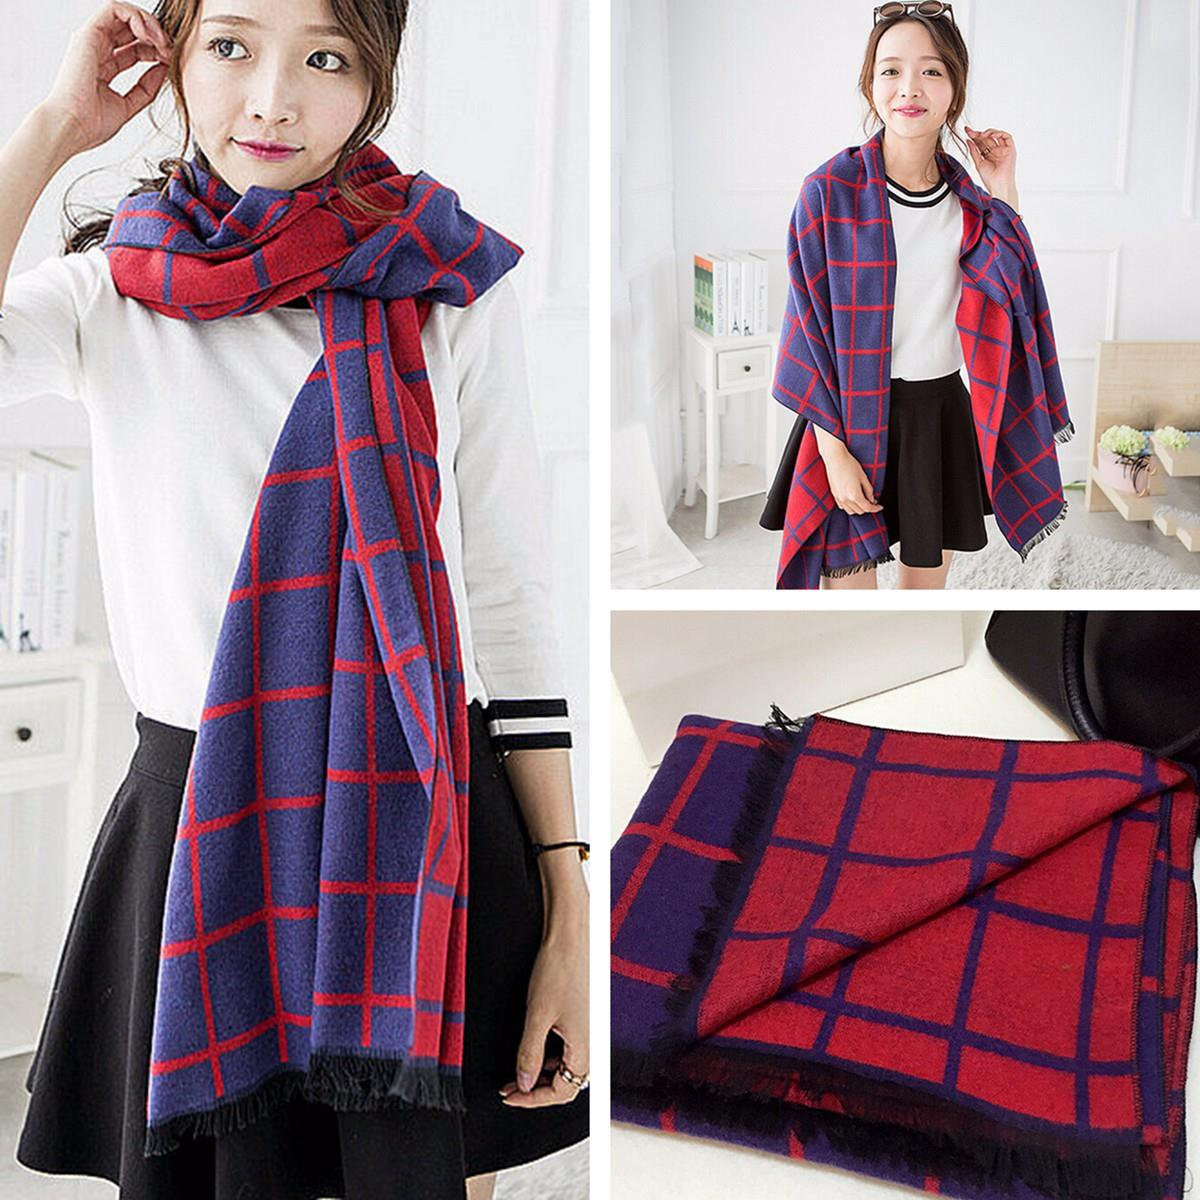 Women Plaid warm scarves Oversized Blanket font b Tartan b font Scarves Checkered Tassel Pashmina Fashion